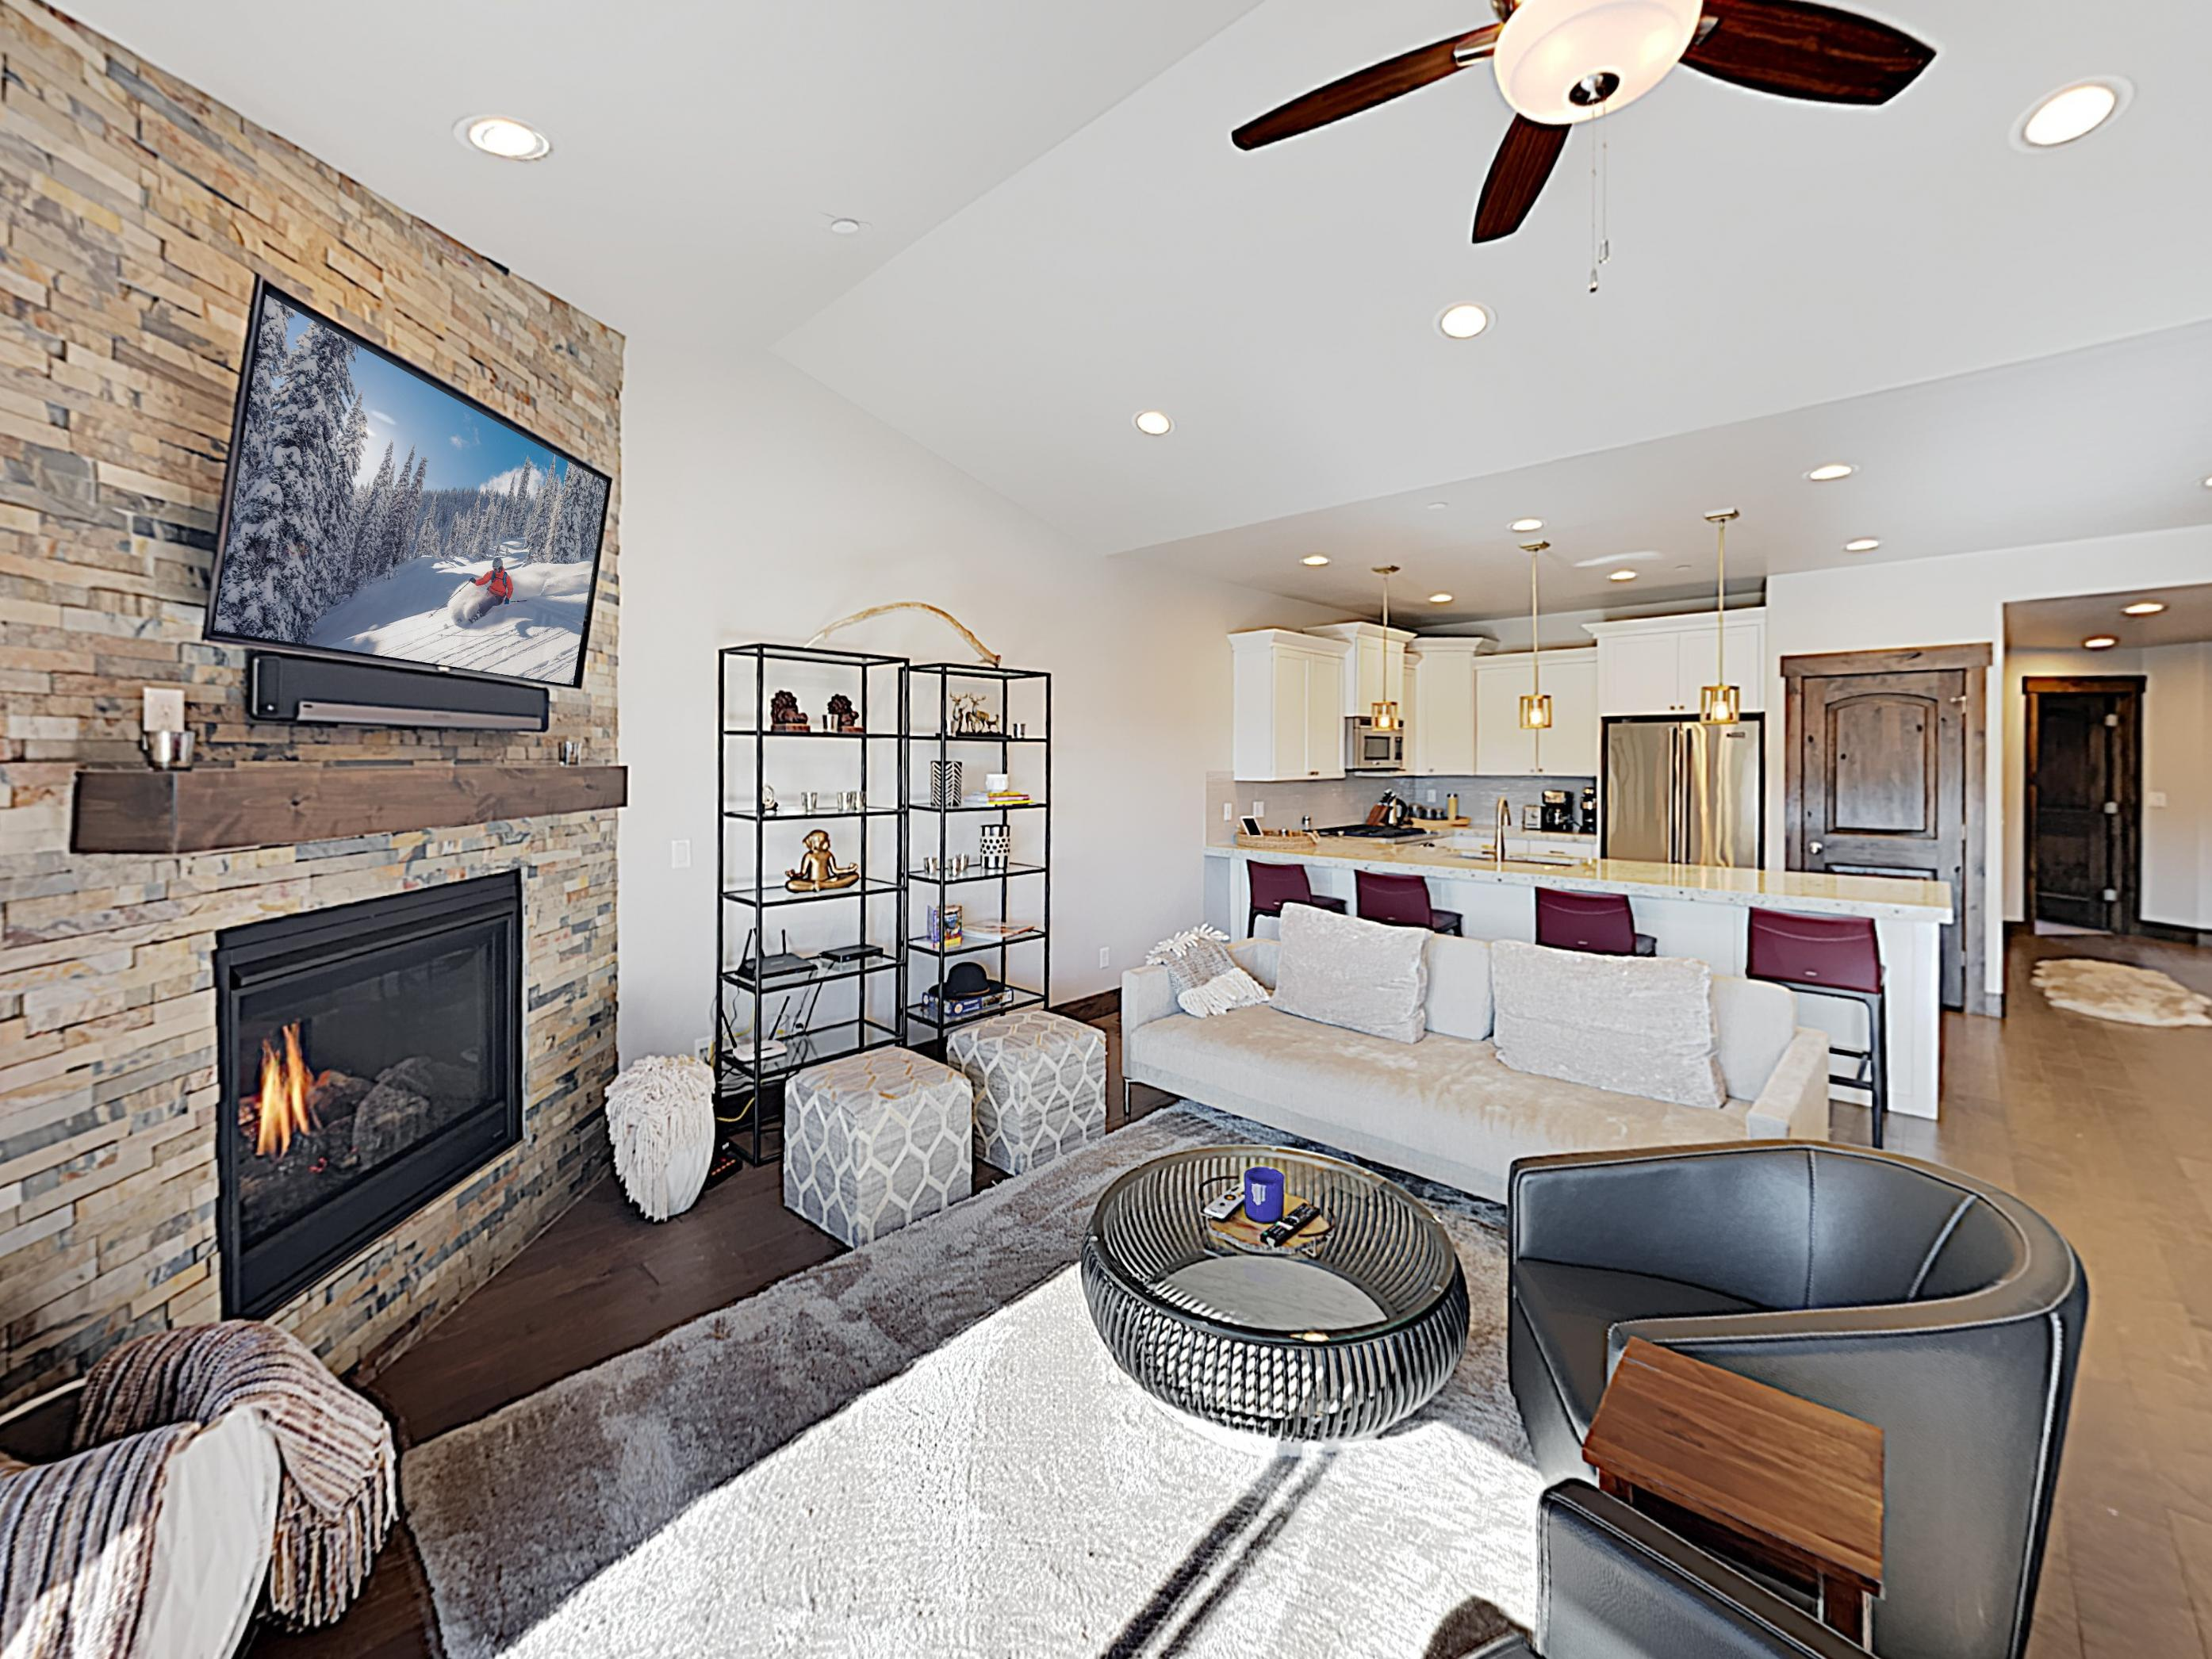 Property Image 1 - Stylish Corner Townhome Featuring Inviting Mountain Views